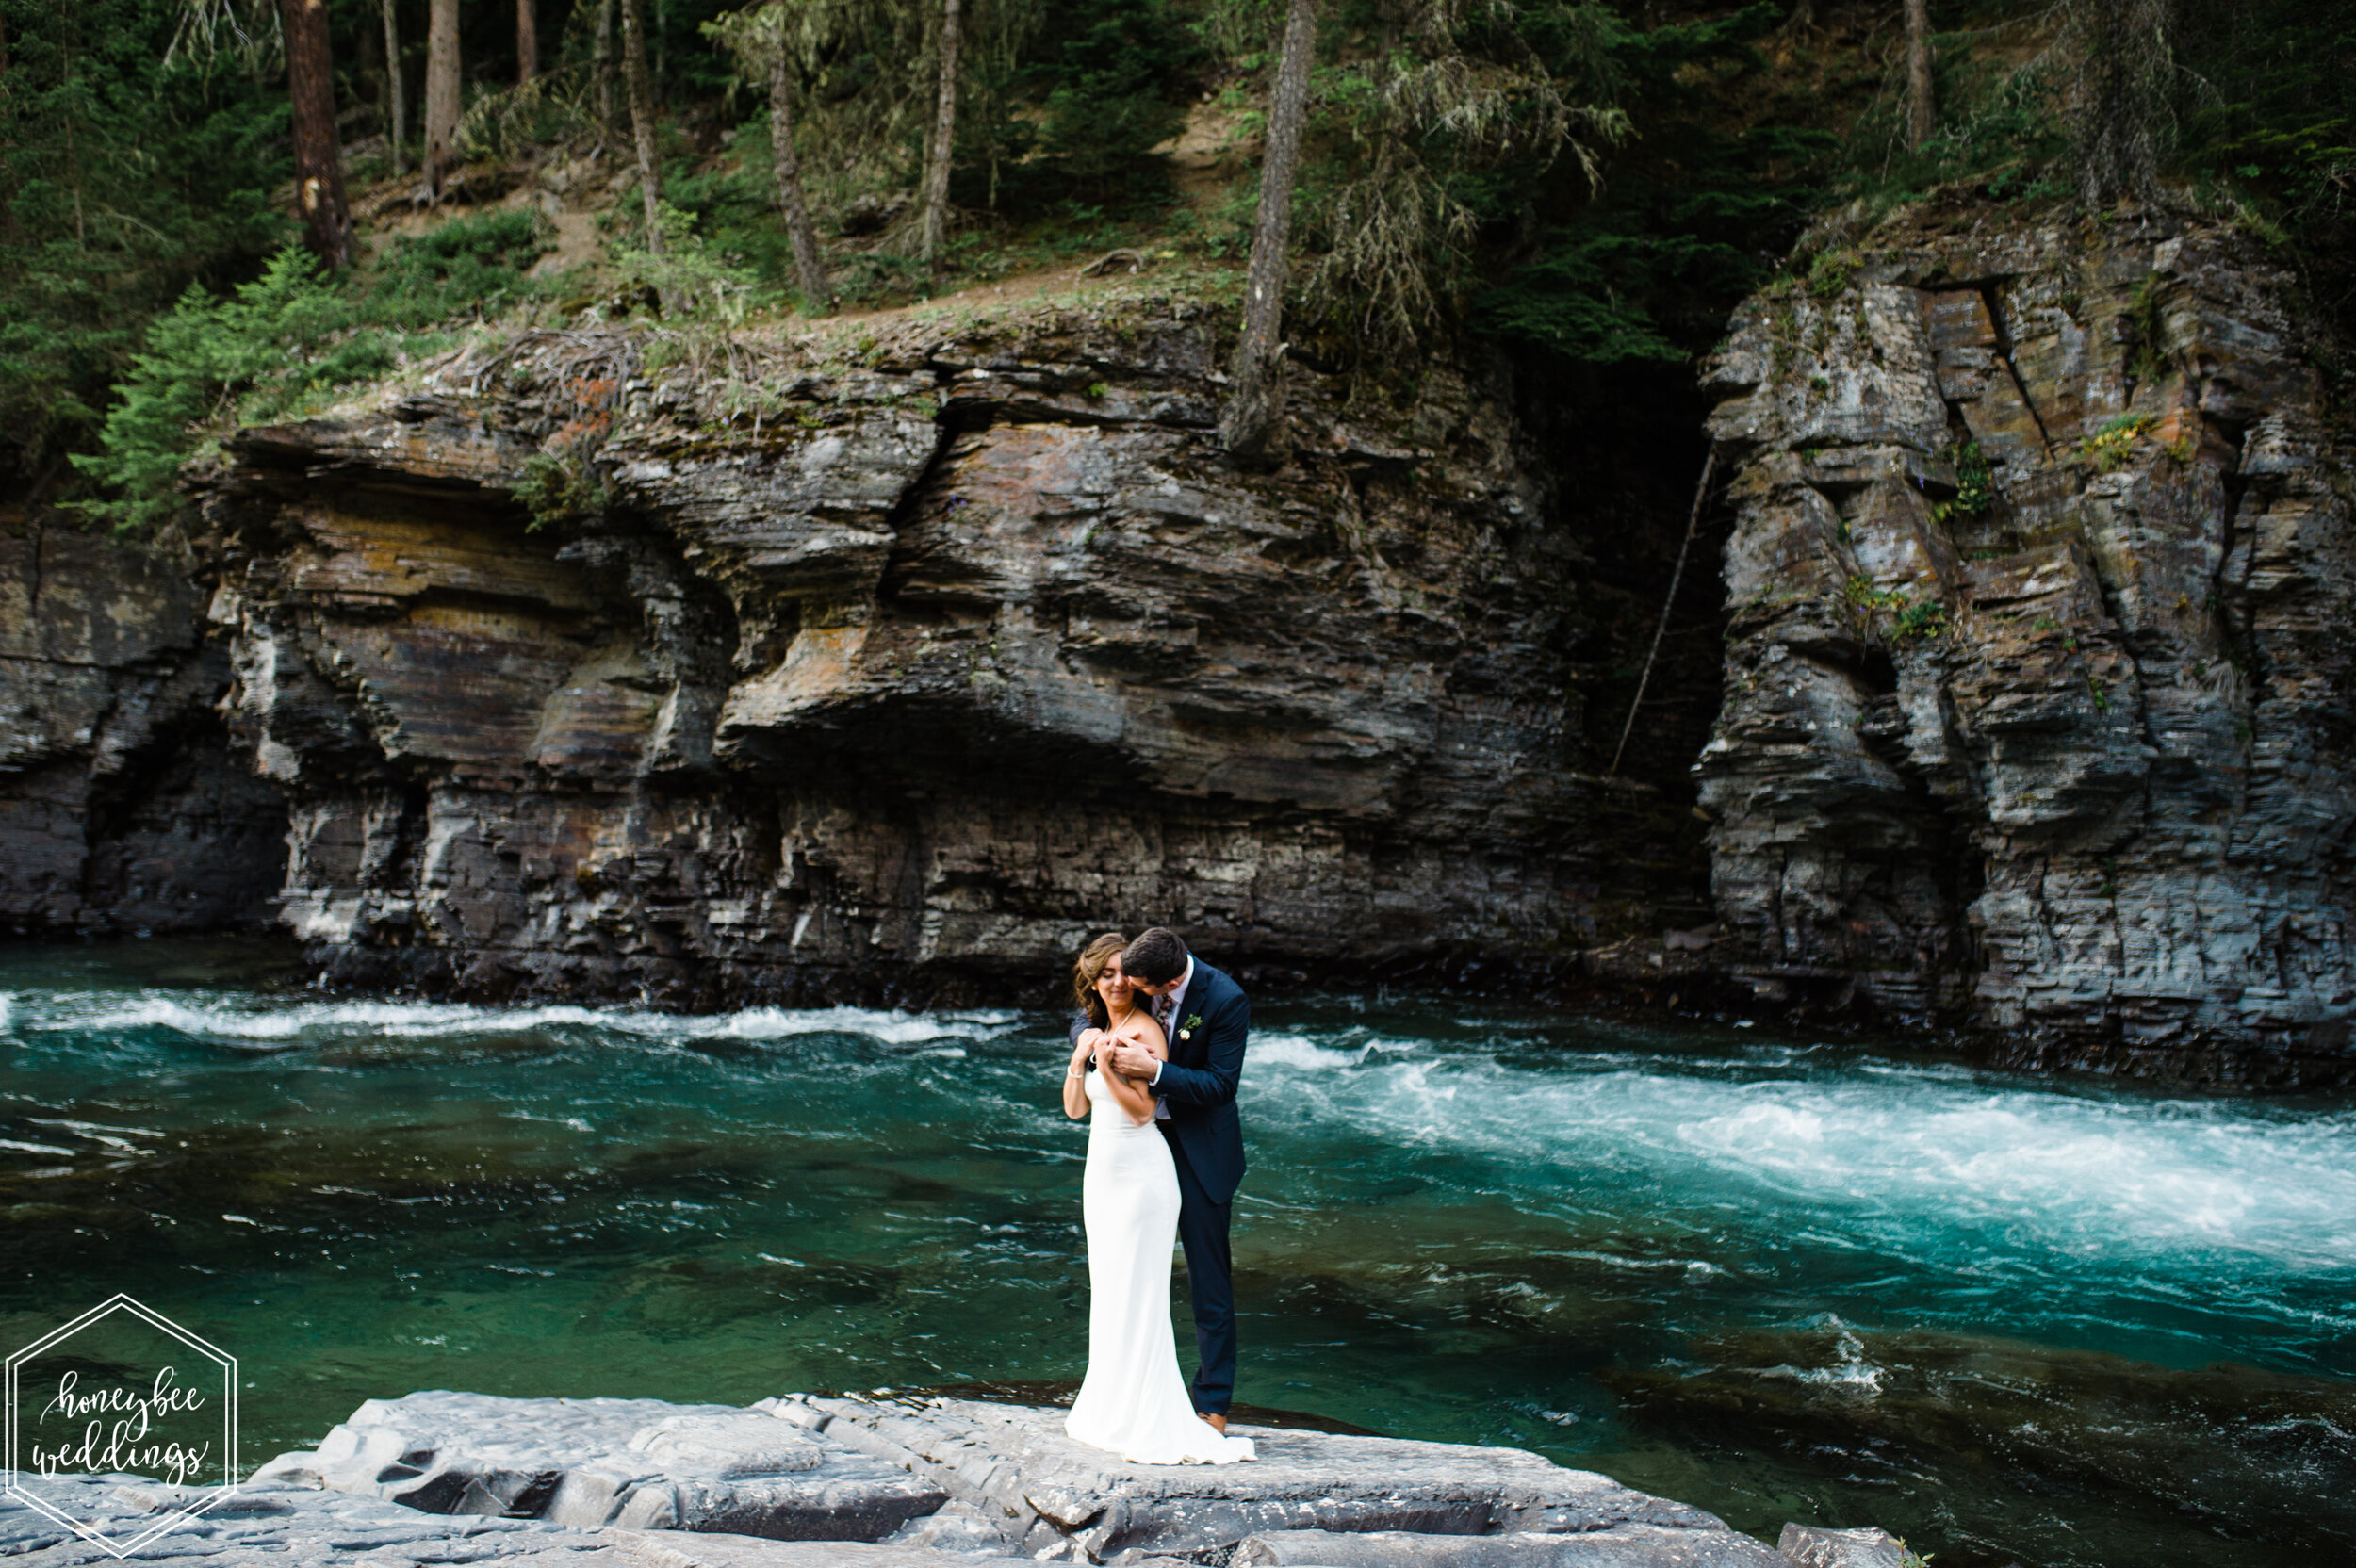 016Glacier National Park Wedding_Glacier Outdoor Center_Honeybee Weddings_Anna & Seth_July 21, 2019-2508.jpg